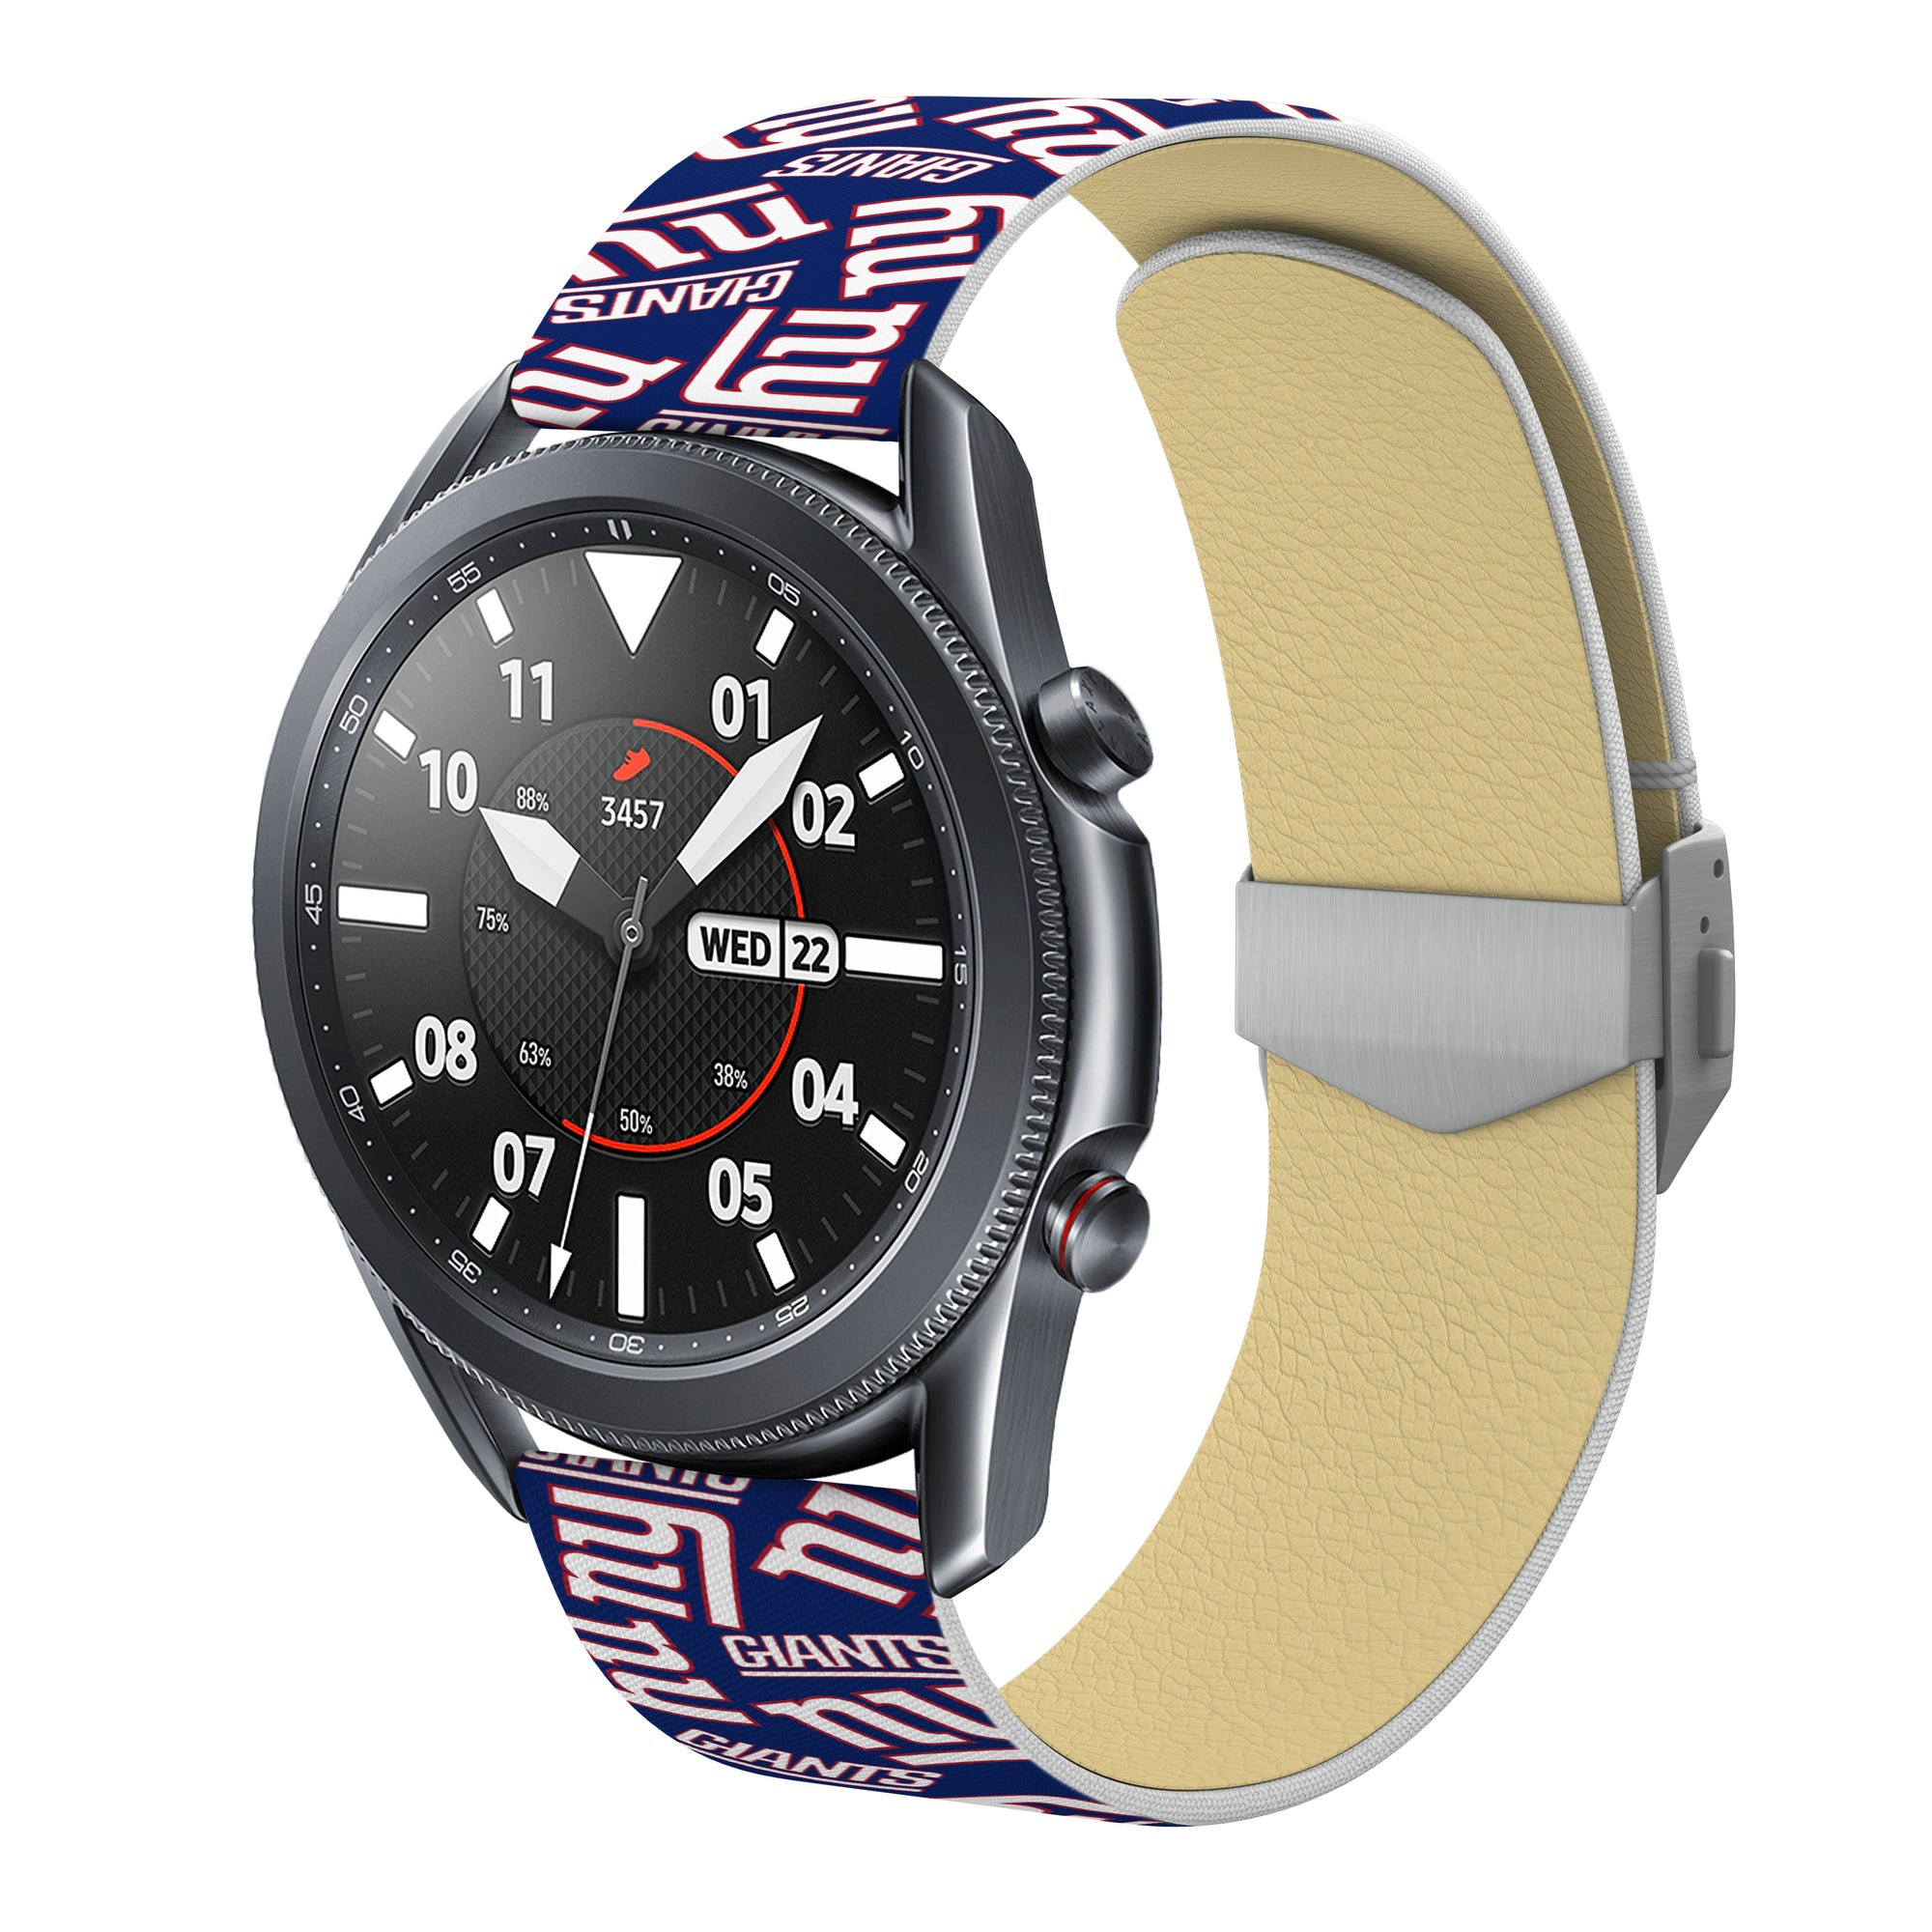 New York Giants Full Print Quick Change Watch Band With Engraved Buckle - AffinityBands